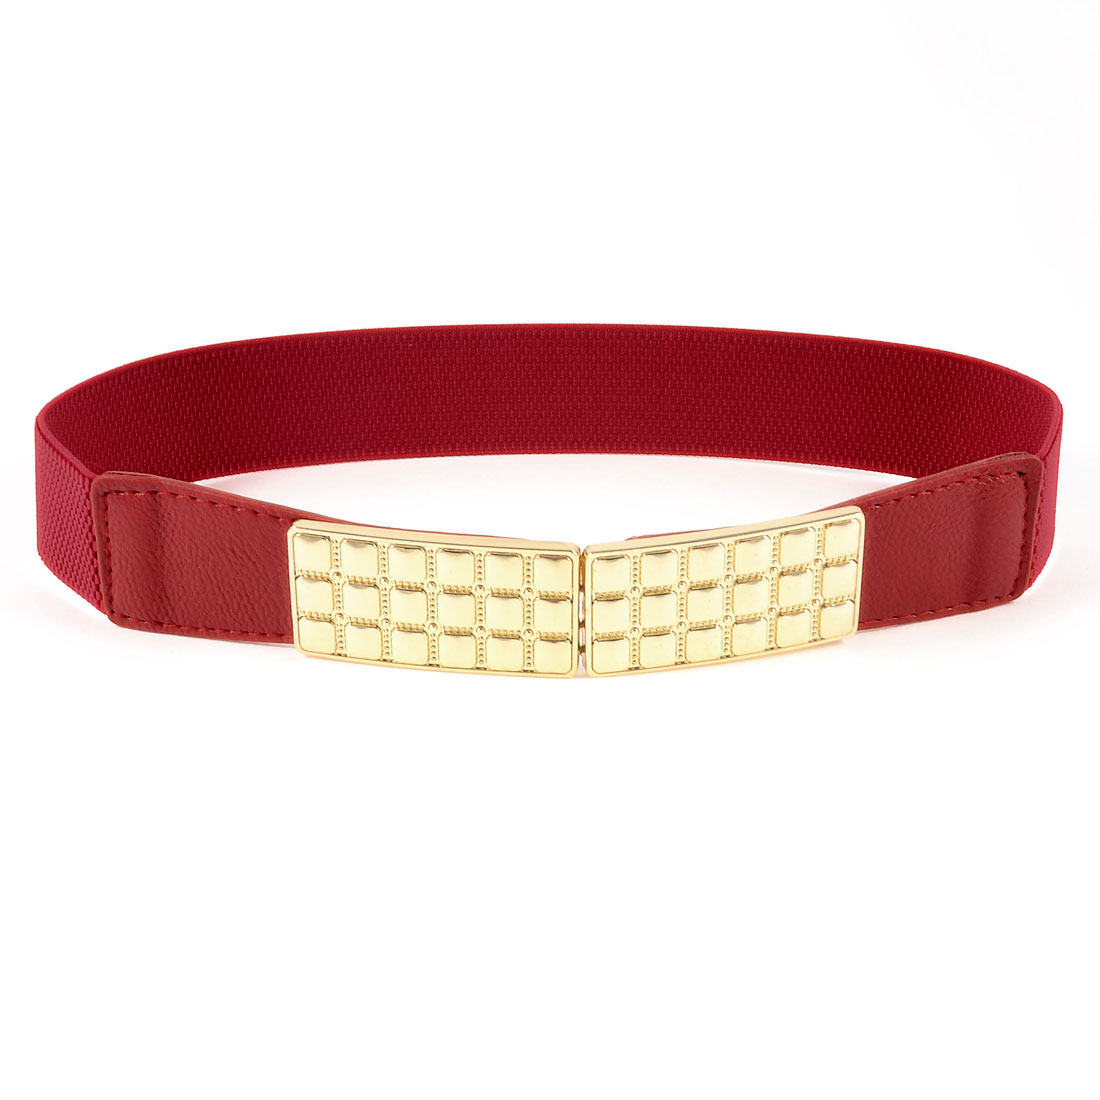 Ladies Gold Tone Metal Plate Hook Buckle Red Elastic Waist Cinch Belt